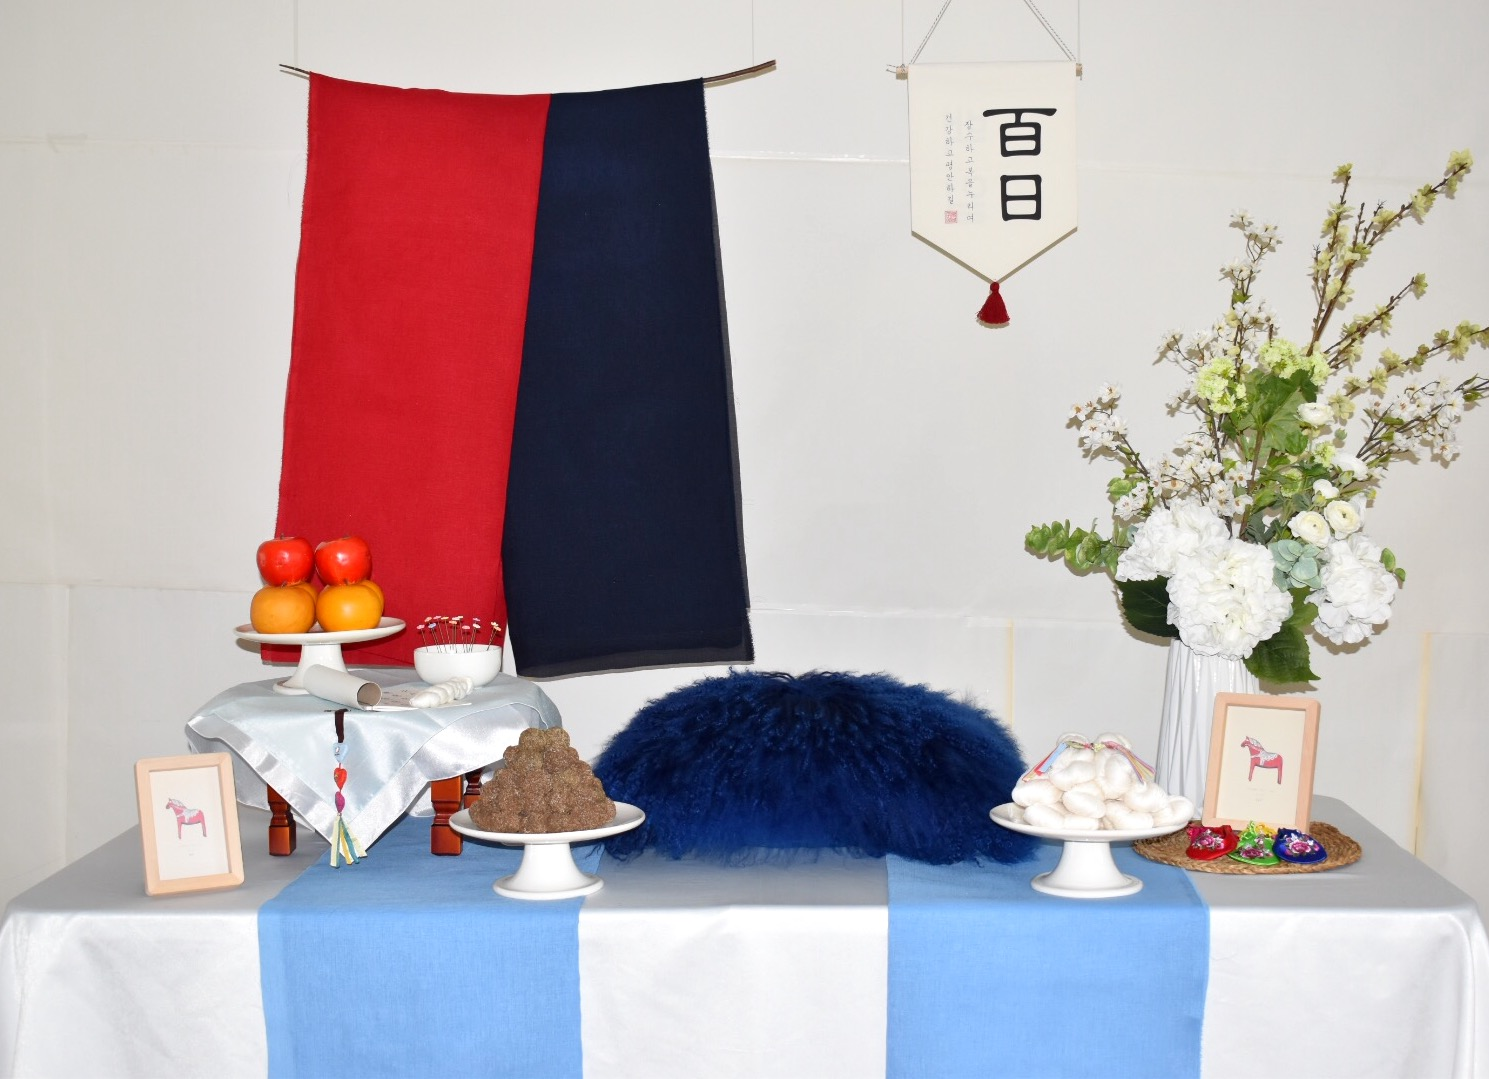 PETIT STYLE TABLE RENTAL: 태극 백일 (The First red-Navy) - Included: Two tone hanging runner, round wooden table, traditional tablecloth, traditional runner, small tablecloth, display fruits(option), rice cakes(option), silk flowers and plastic vases, shil ta rae, traditional accessories are randomly picked, 2 picture frame** Mix &Match backdrops and runners *** Pick up- Everything included in the picture except display rice cakes, display fruits, cushion.* Out of state - display rice cakes, apples are not included. (optional).* Shipping fee will apply. Fees might vary depending on location.상품구성: 투톤 행인 러너 2개, 상 1개, 한복 원단 러너,상보, 모형 과일(옵션), 모형 떡(옵션), 꽃과 아크릴 화병, 상화, 실타래, 전통 장식품들 램덤, 액자 2개** 러너 Mix & Match 하실수 있습니다.*** Pick up- 사진에 모든 물품 포함되지만 모형떡, 과일, 방석은 포함되지 않습니다. 전통 소품들은 랜덤입니다.* 타주시 - 깨지지 않는 소품들로 나갑니다. 모형 과일, 떡은 옵션입니다. 전통 장식품들은 랜덤입니다.*배송시 배송비는 추가이며, 지역따라 배송비가 다를수 있습니다.